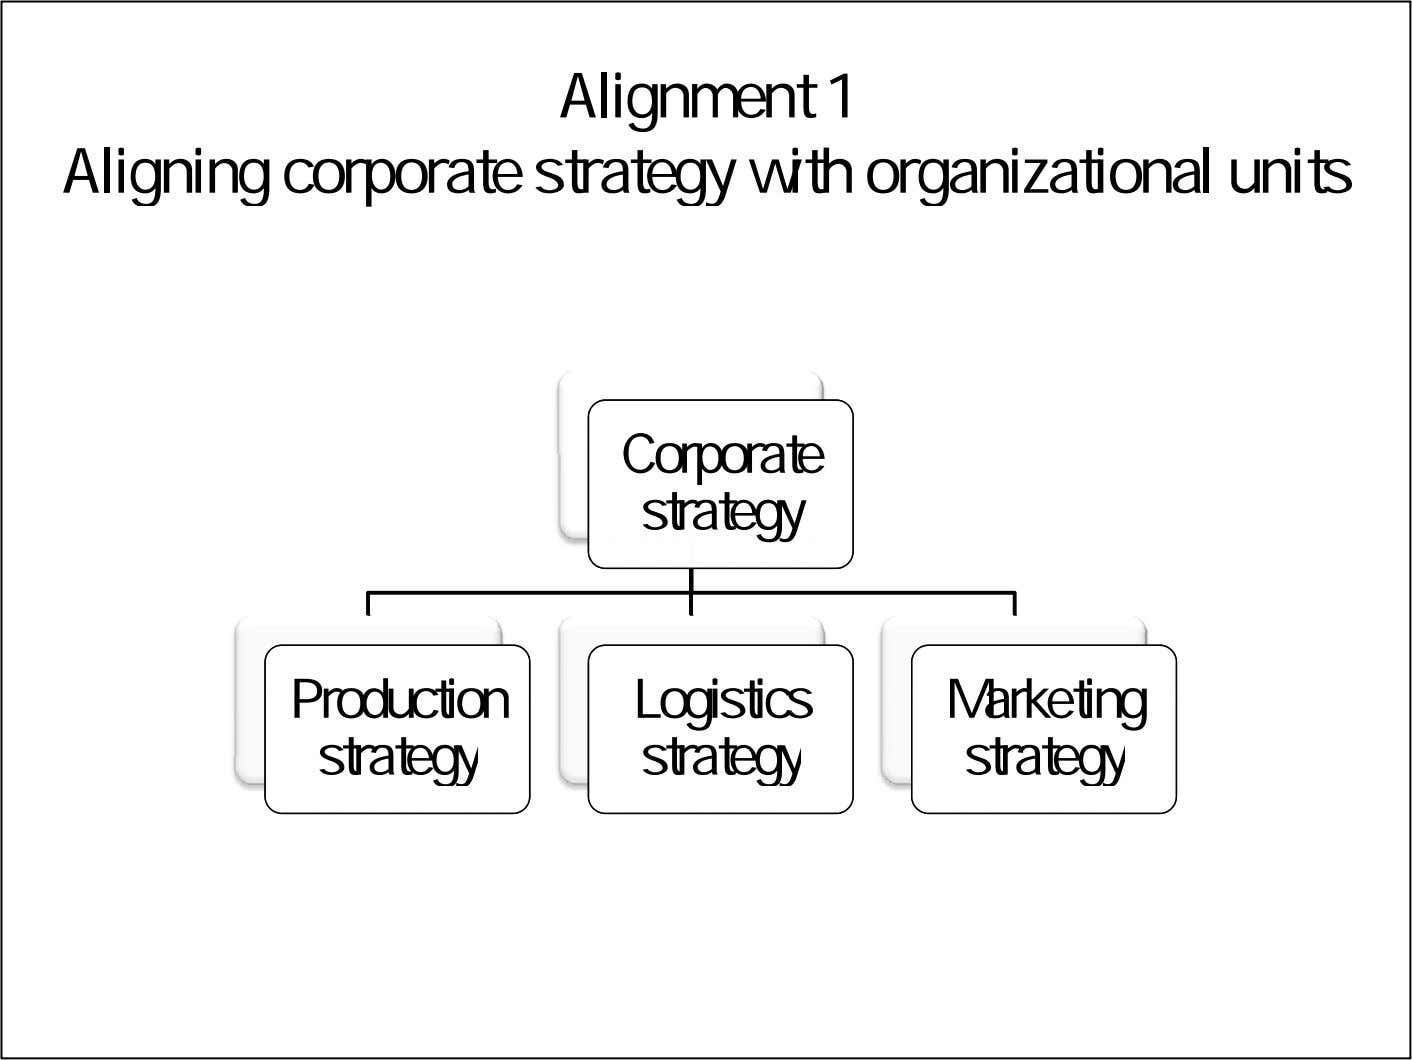 Alignment 1 Aligning corporate strategy with organizational units CCorporate orporate strategy strategy Production